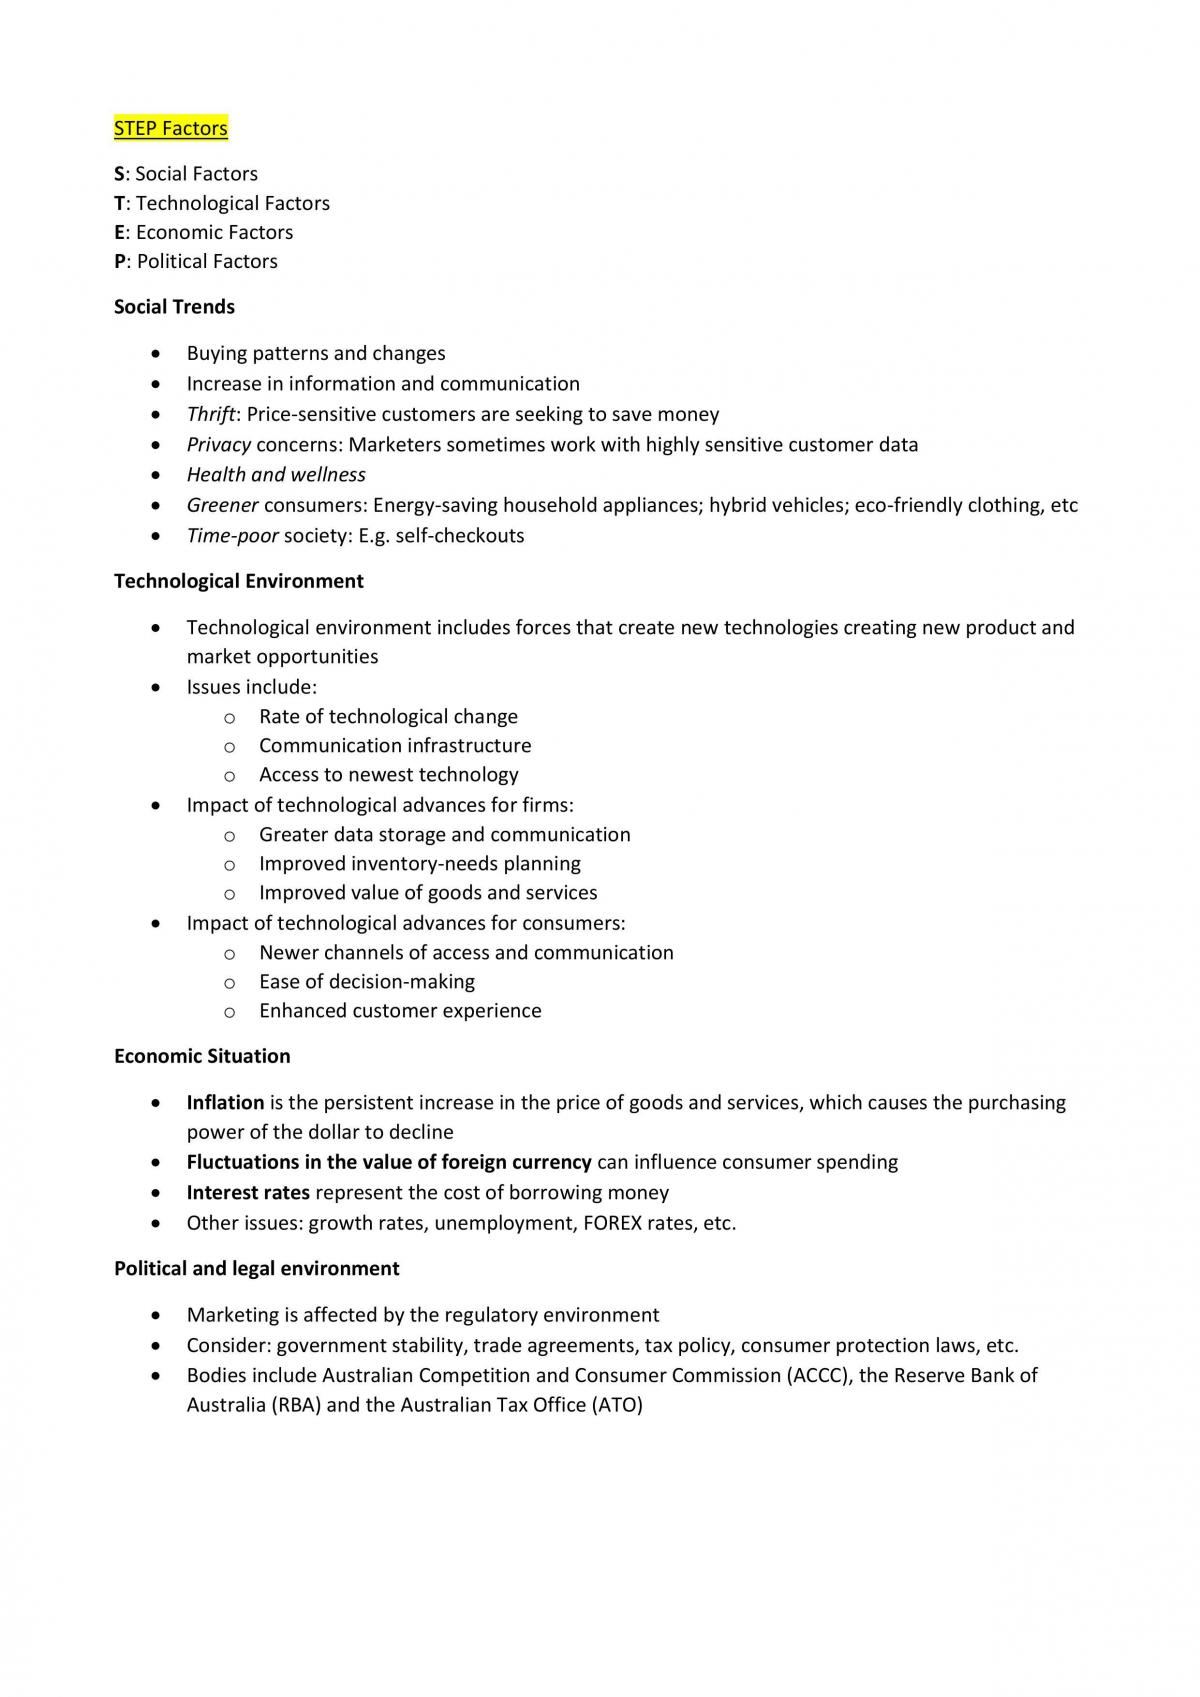 MARK1012 Complete Notes - Page 9